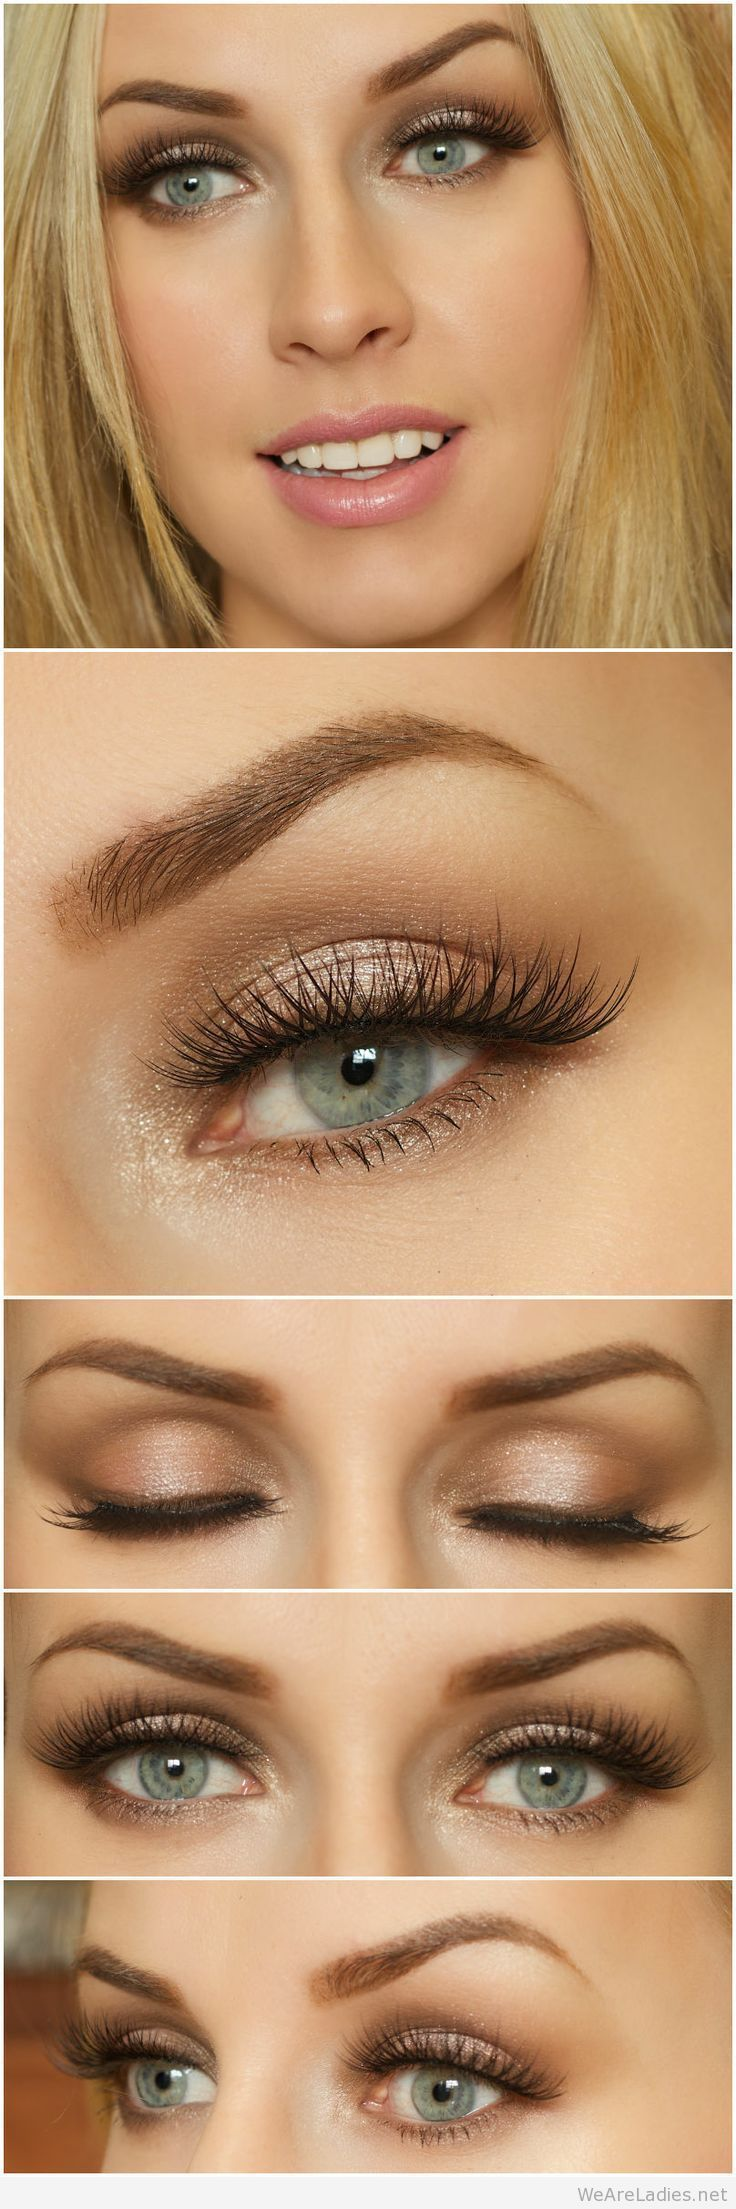 Best Eye Makeup Tutorials Youtube: 25+ Best Ideas About Makeup For Blondes On Pinterest